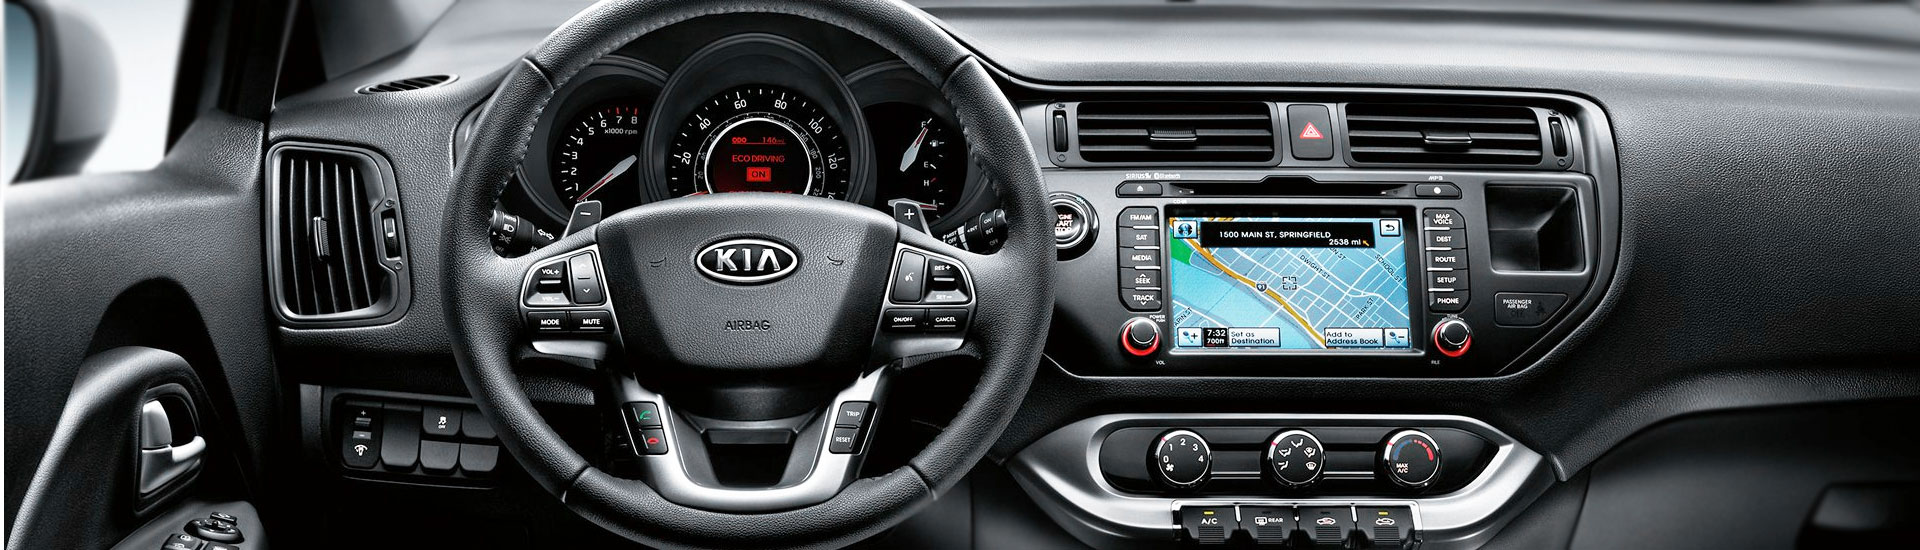 2008 Kia Sorento Custom Dash Kits